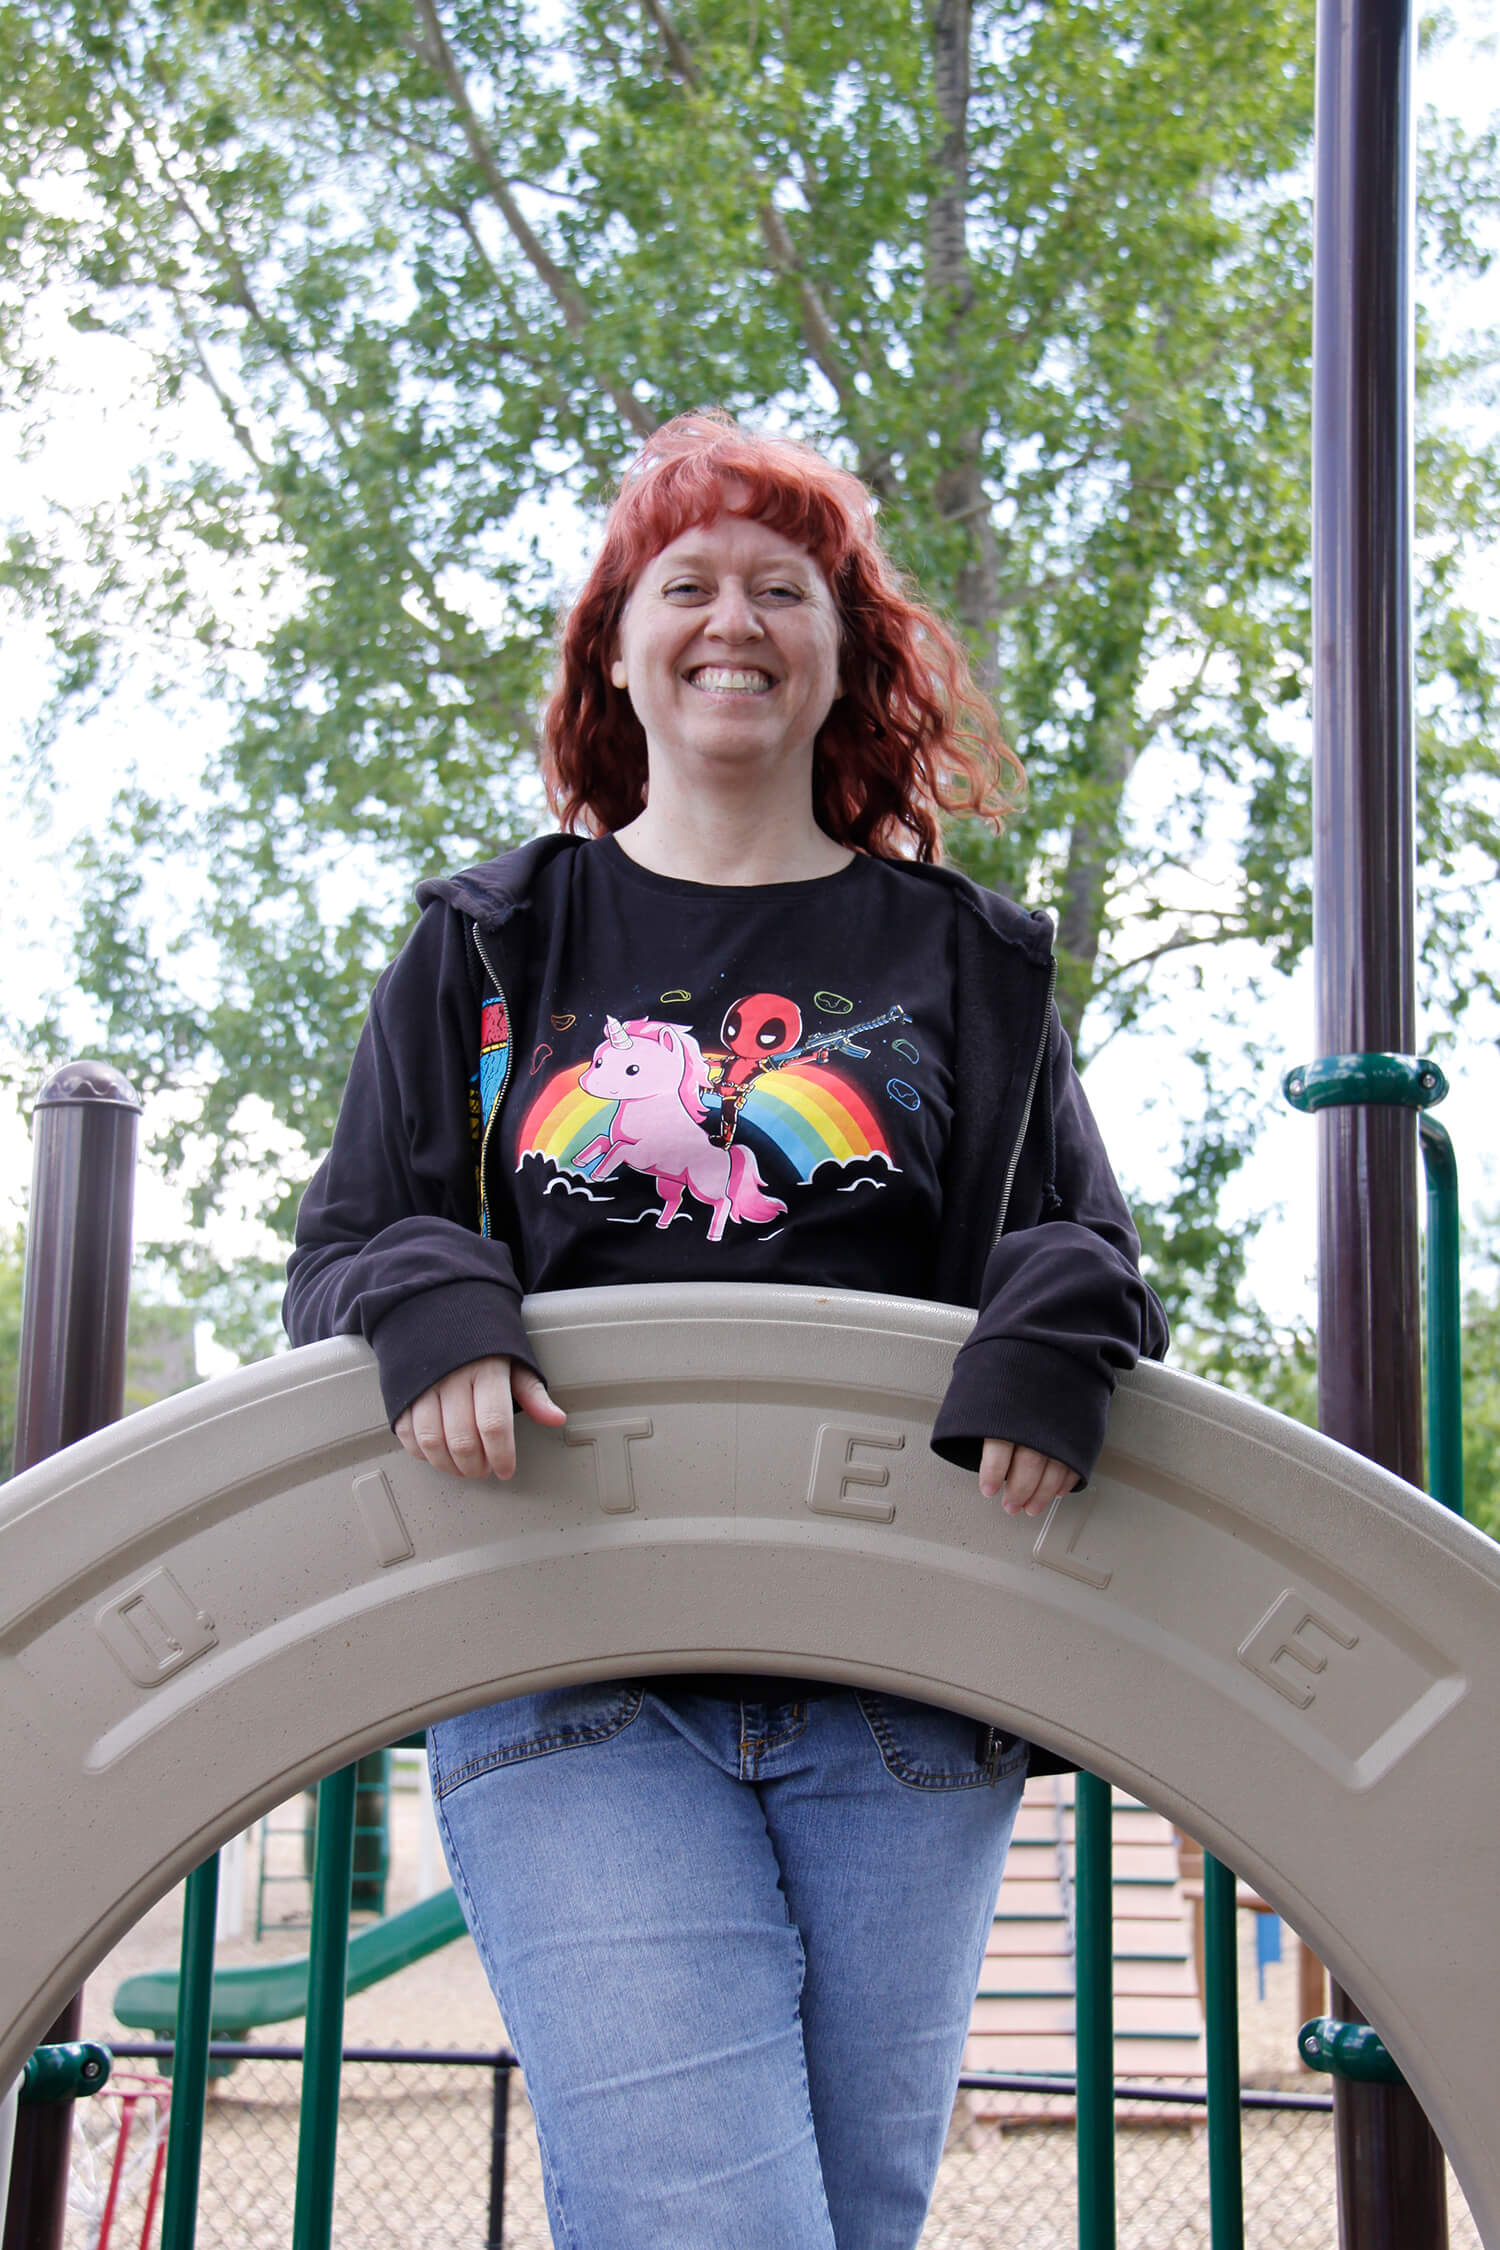 A woman stands with a bright smile as she looks at the camera. She is standing outside, and a park slide can be seen in the background. This is Tia Young, the founder of Badass therapy. She offers childhood trauma therapy in denver, co, complex ptsd treatment in colorado, counseling for domestic violence and rape, and more. Contact her today and start healing!